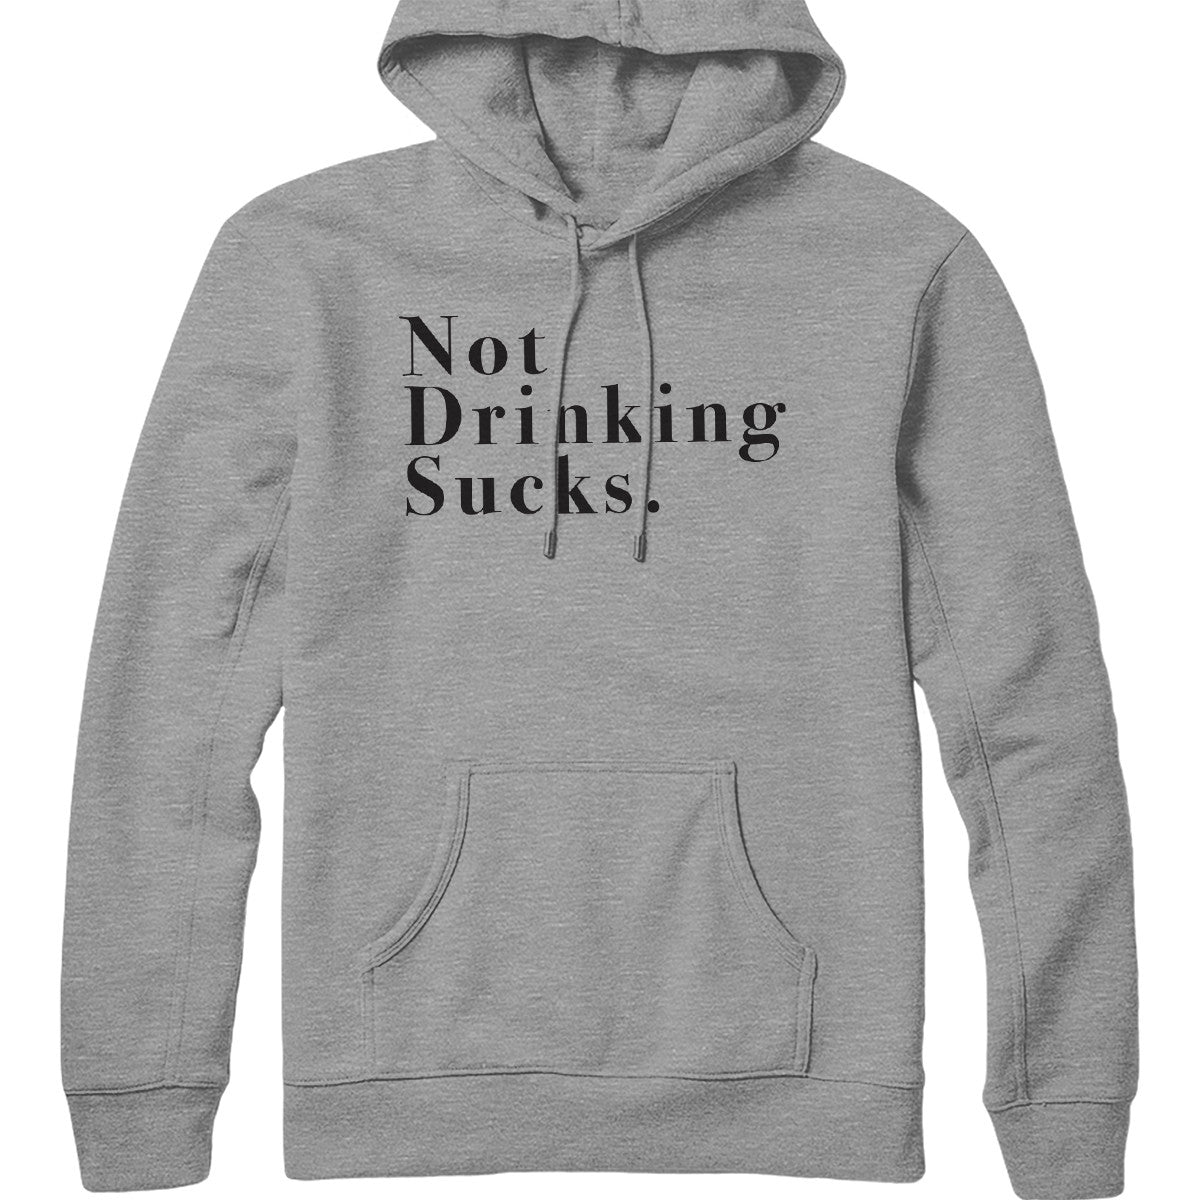 Not Drinking Sucks Hoodie